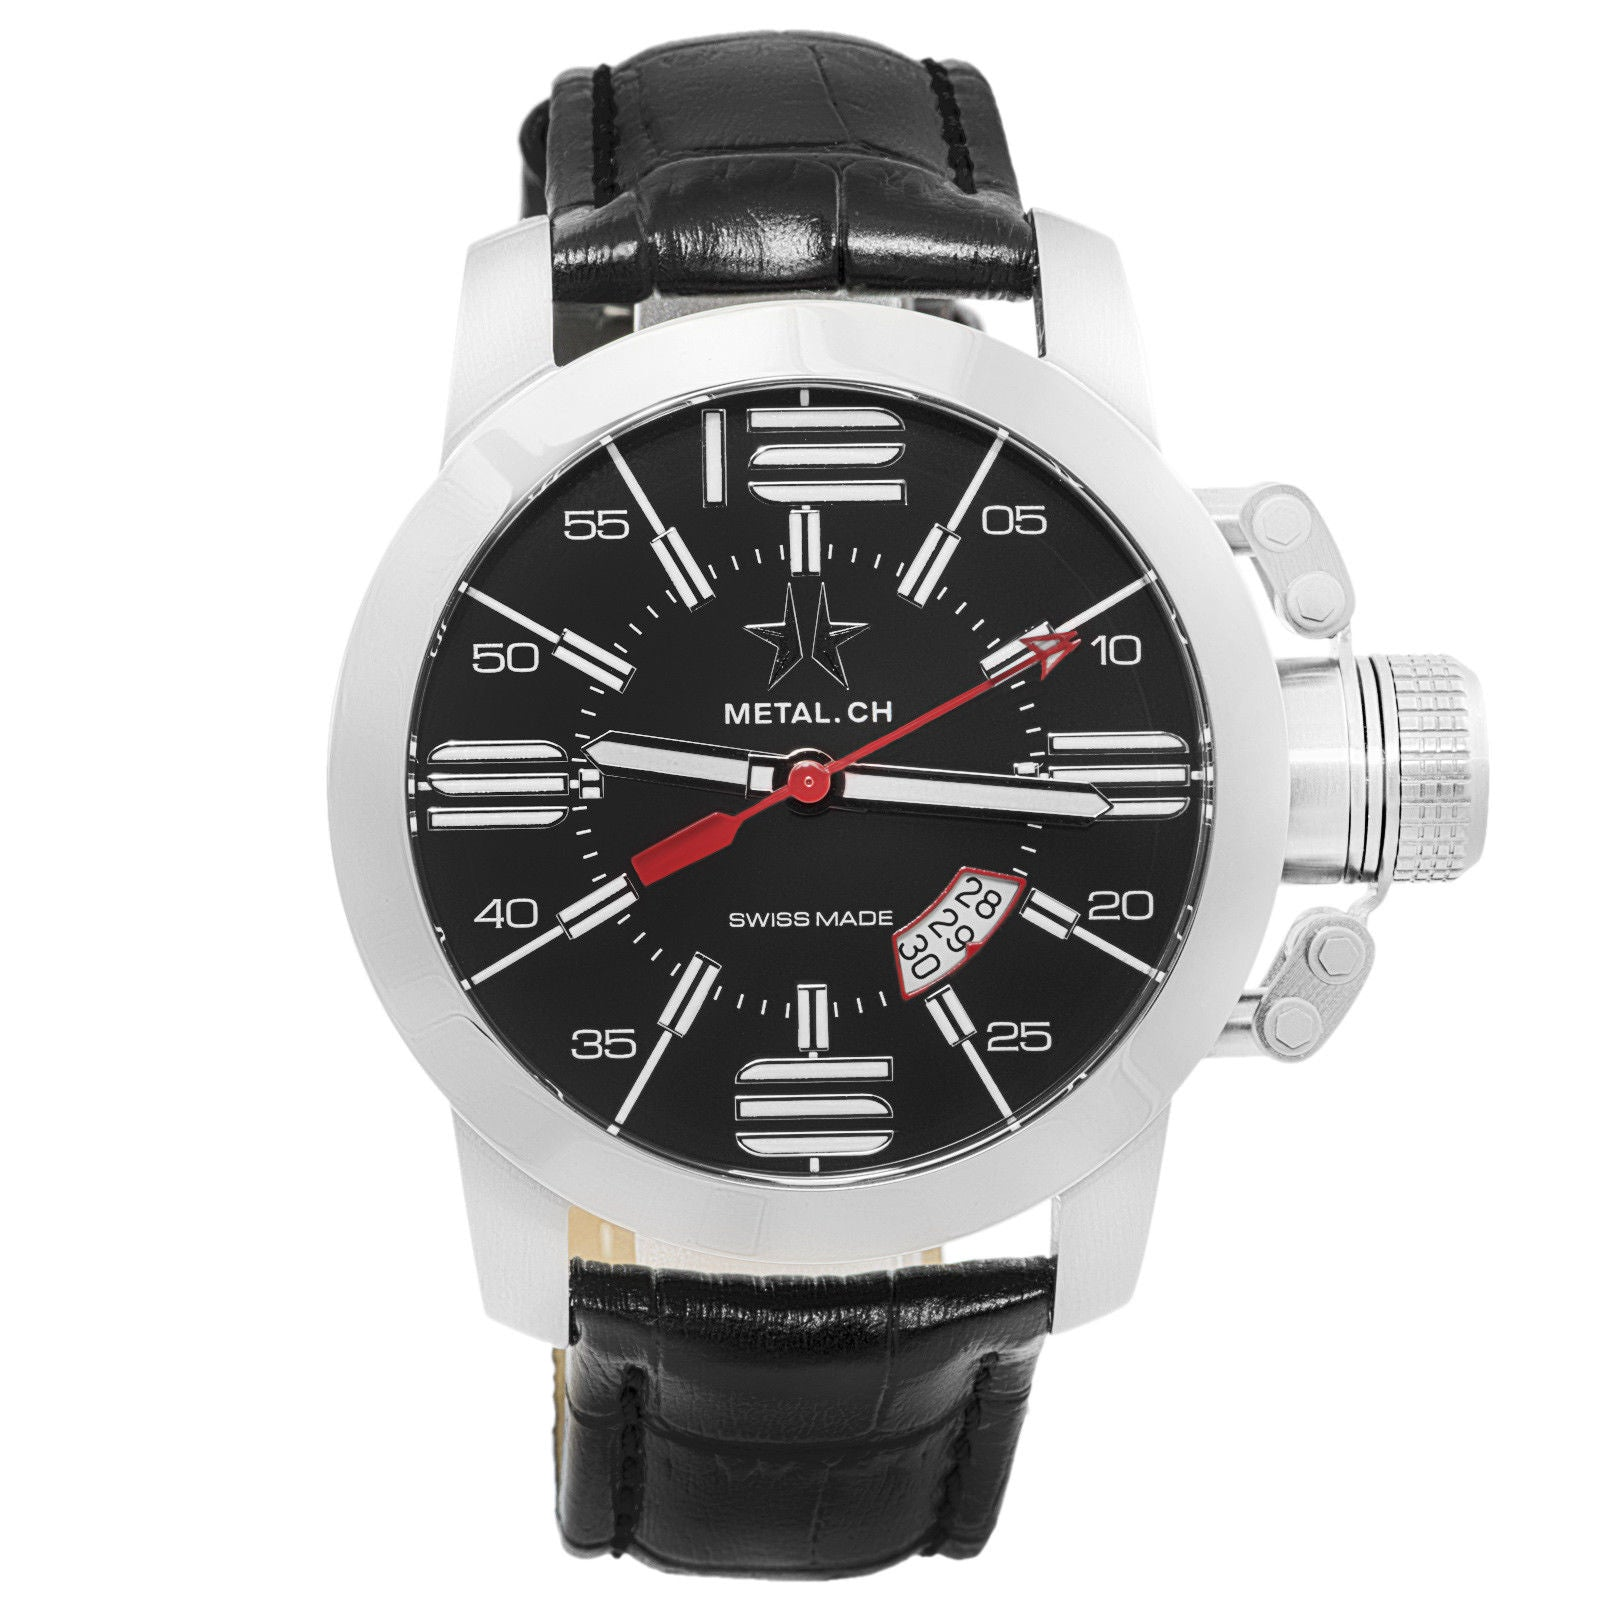 Chronometrie Initial Mens Swiss Made Black Leather Watch 1120.47-Luxury Watches | Mens And Ladies Luxury Watches | Upscale Time